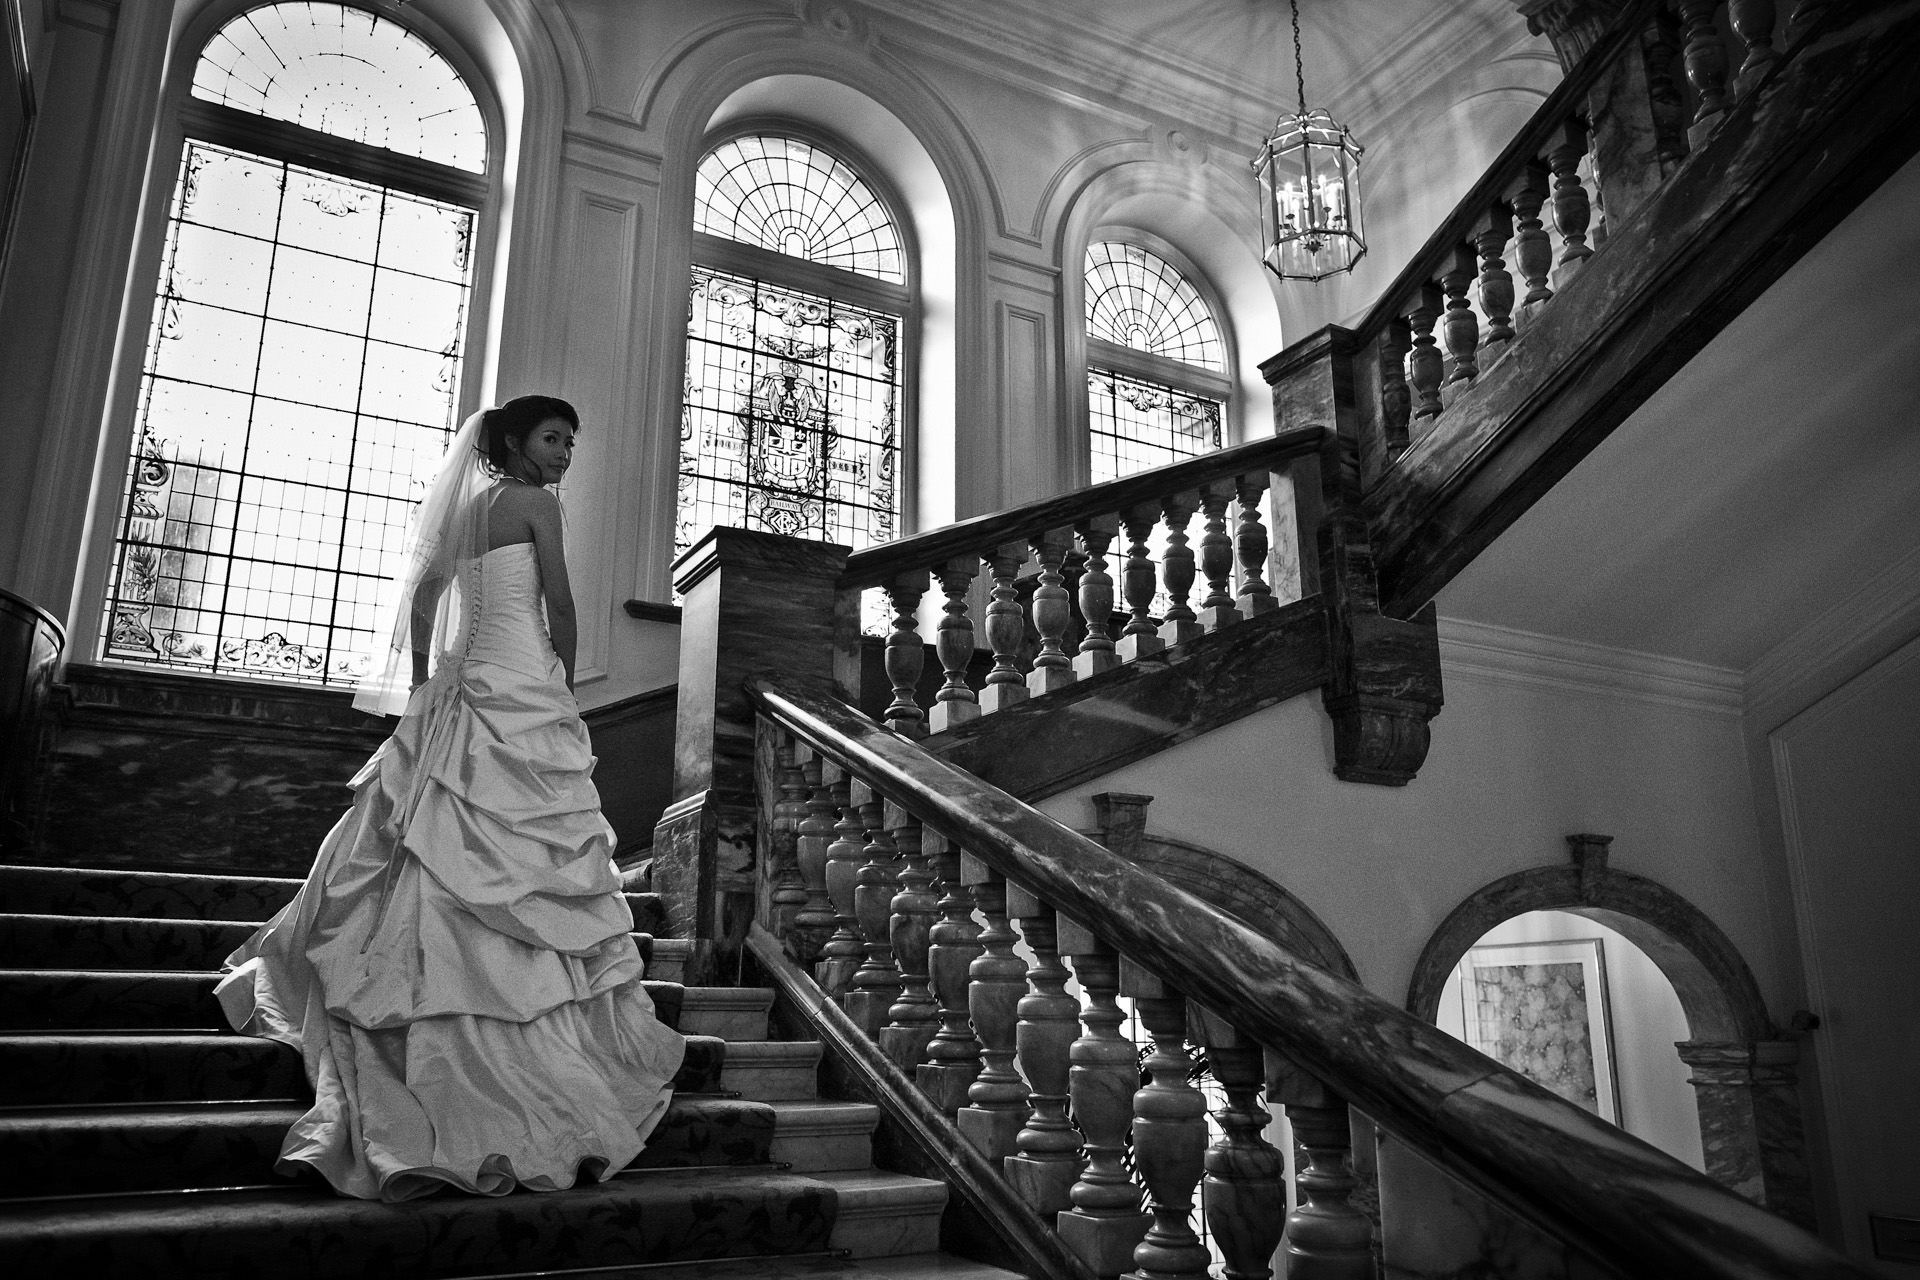 Chinese Wedding photo of the bride walking on the stairs